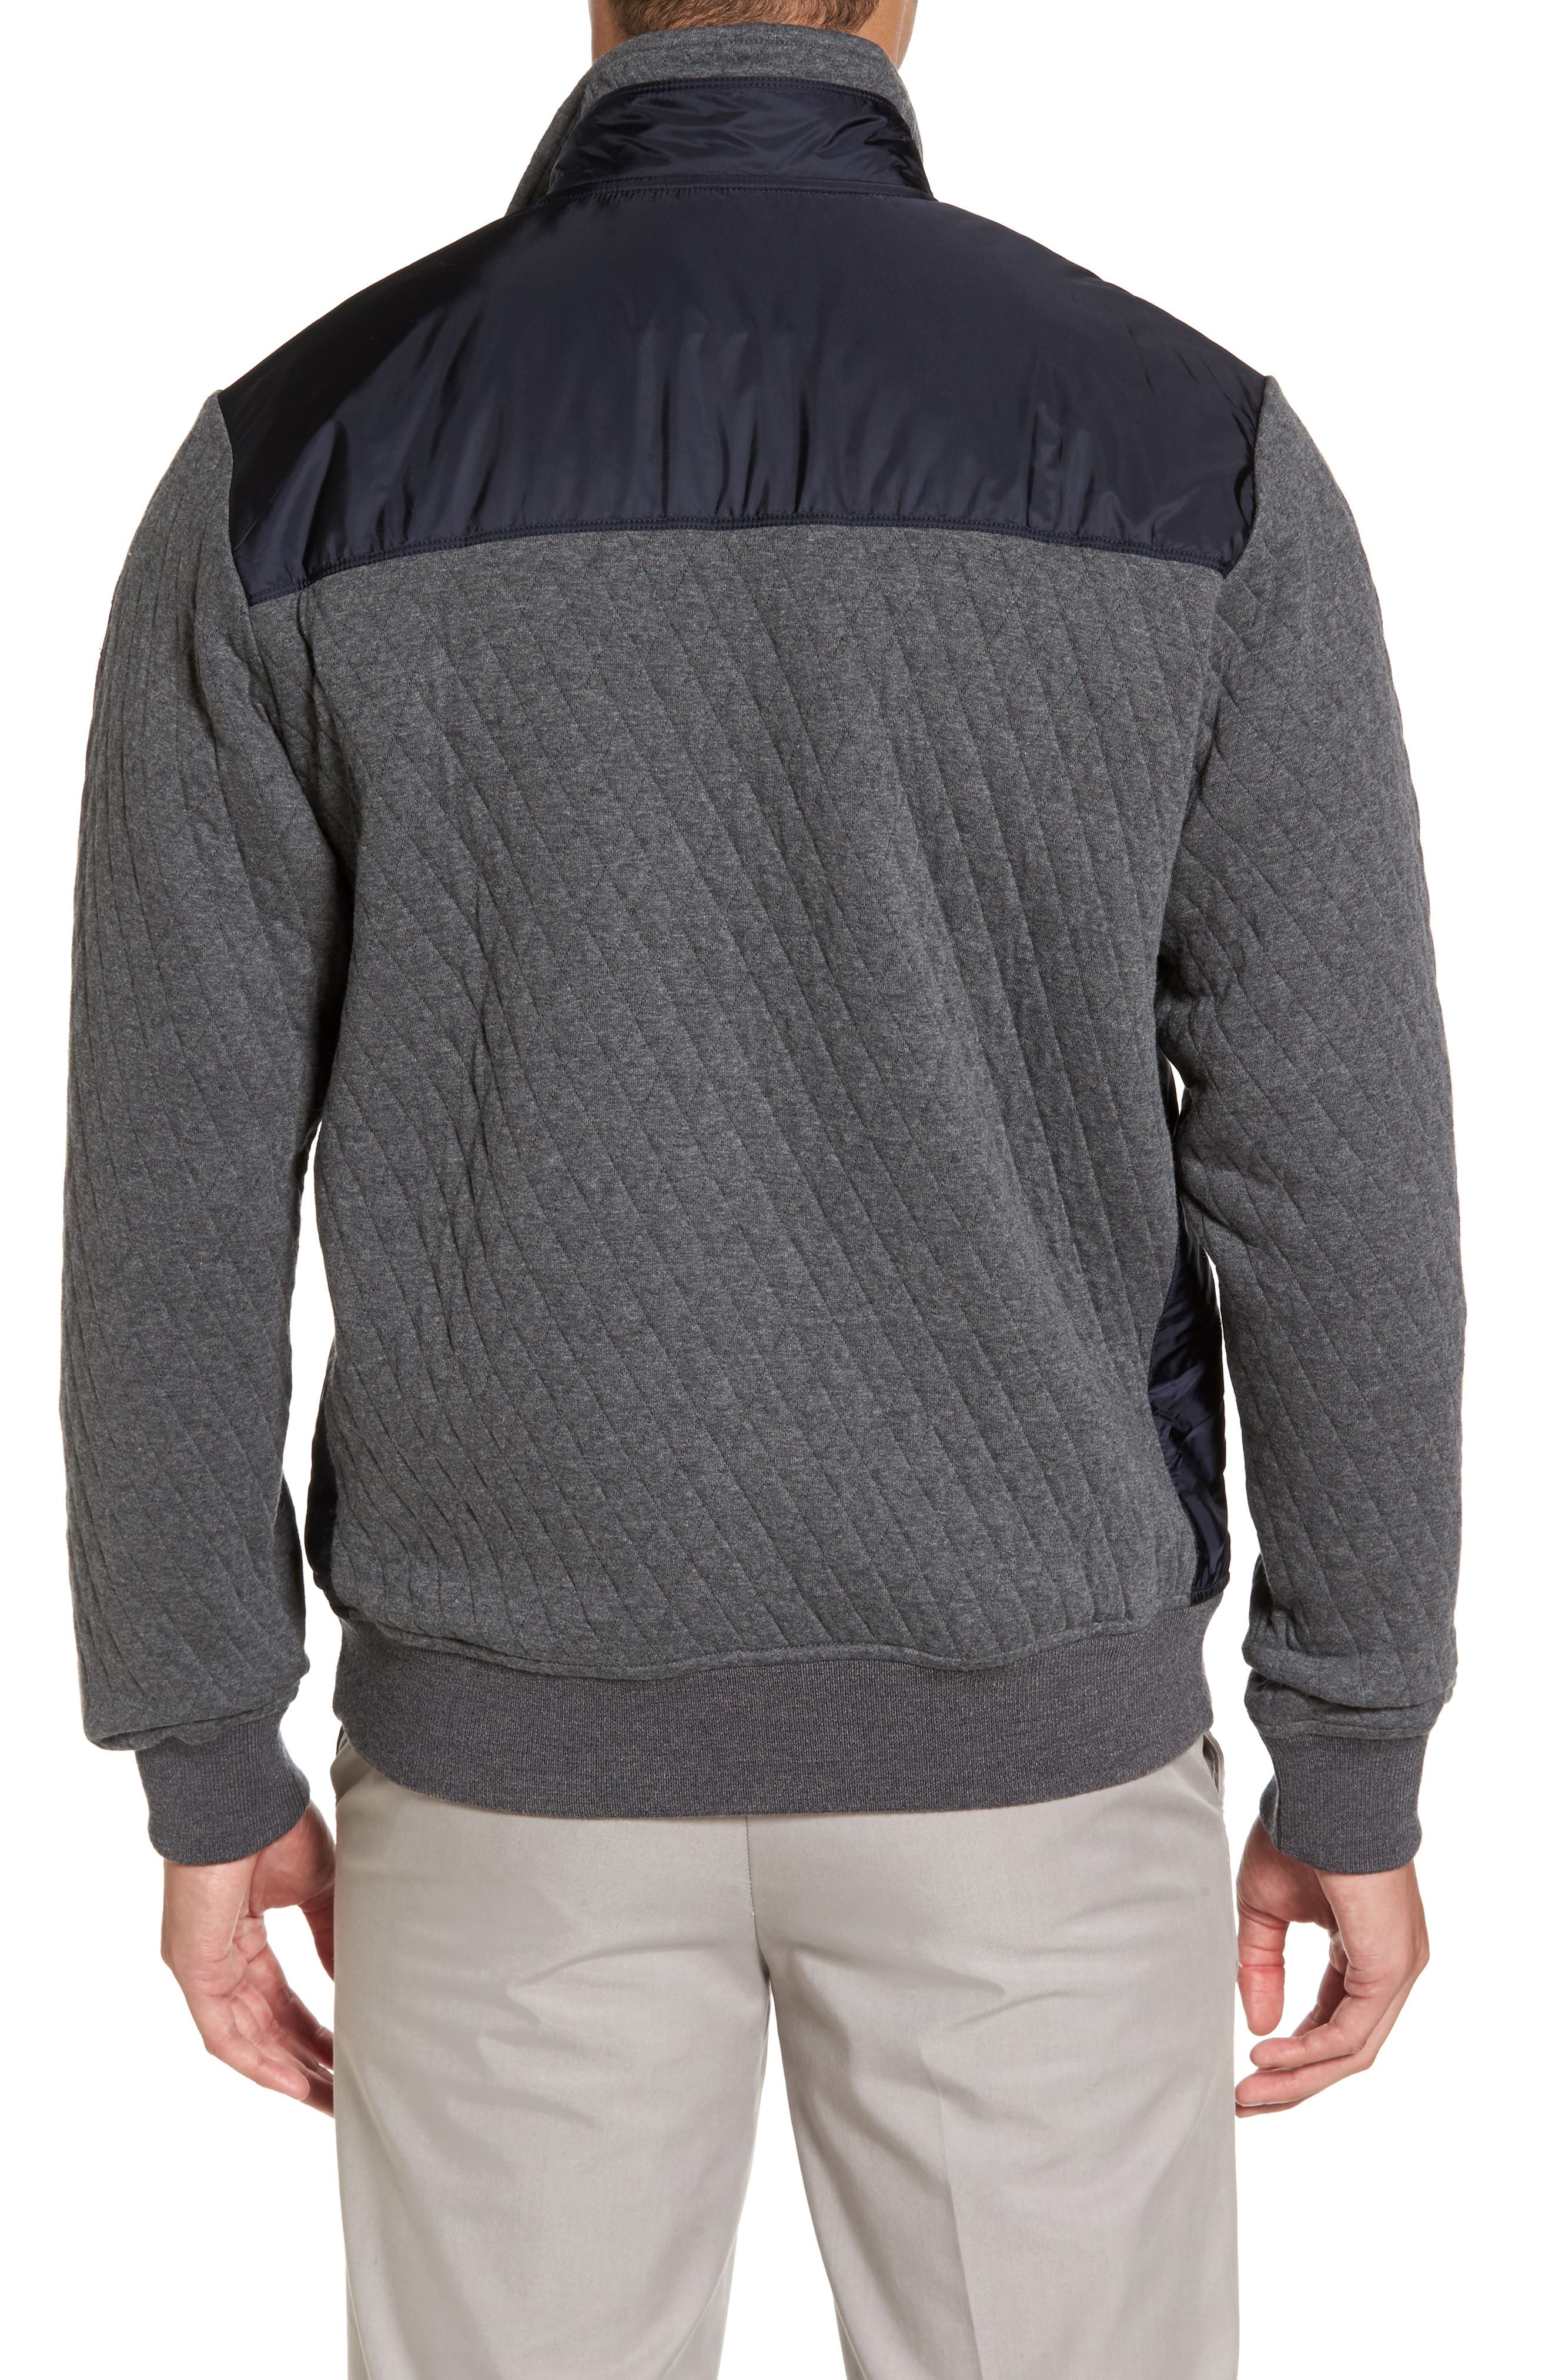 Paul&Shark Colorblock Mixed Media Zip Front Jacket,                             Alternate thumbnail 2, color,                             Navy / Grey